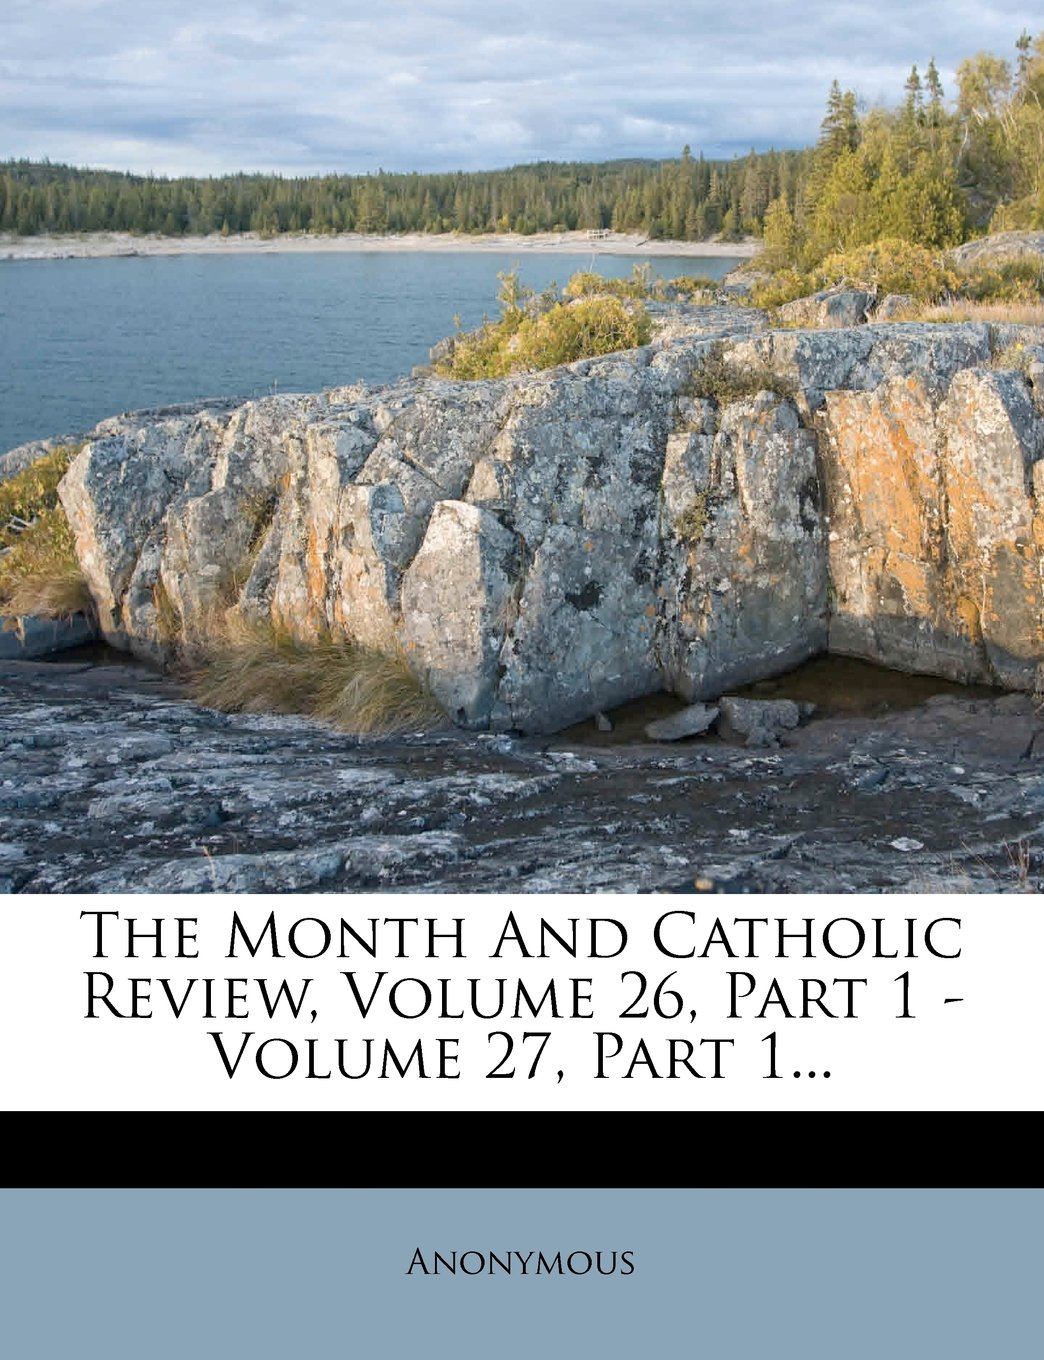 Download The Month And Catholic Review, Volume 26, Part 1 - Volume 27, Part 1... ebook